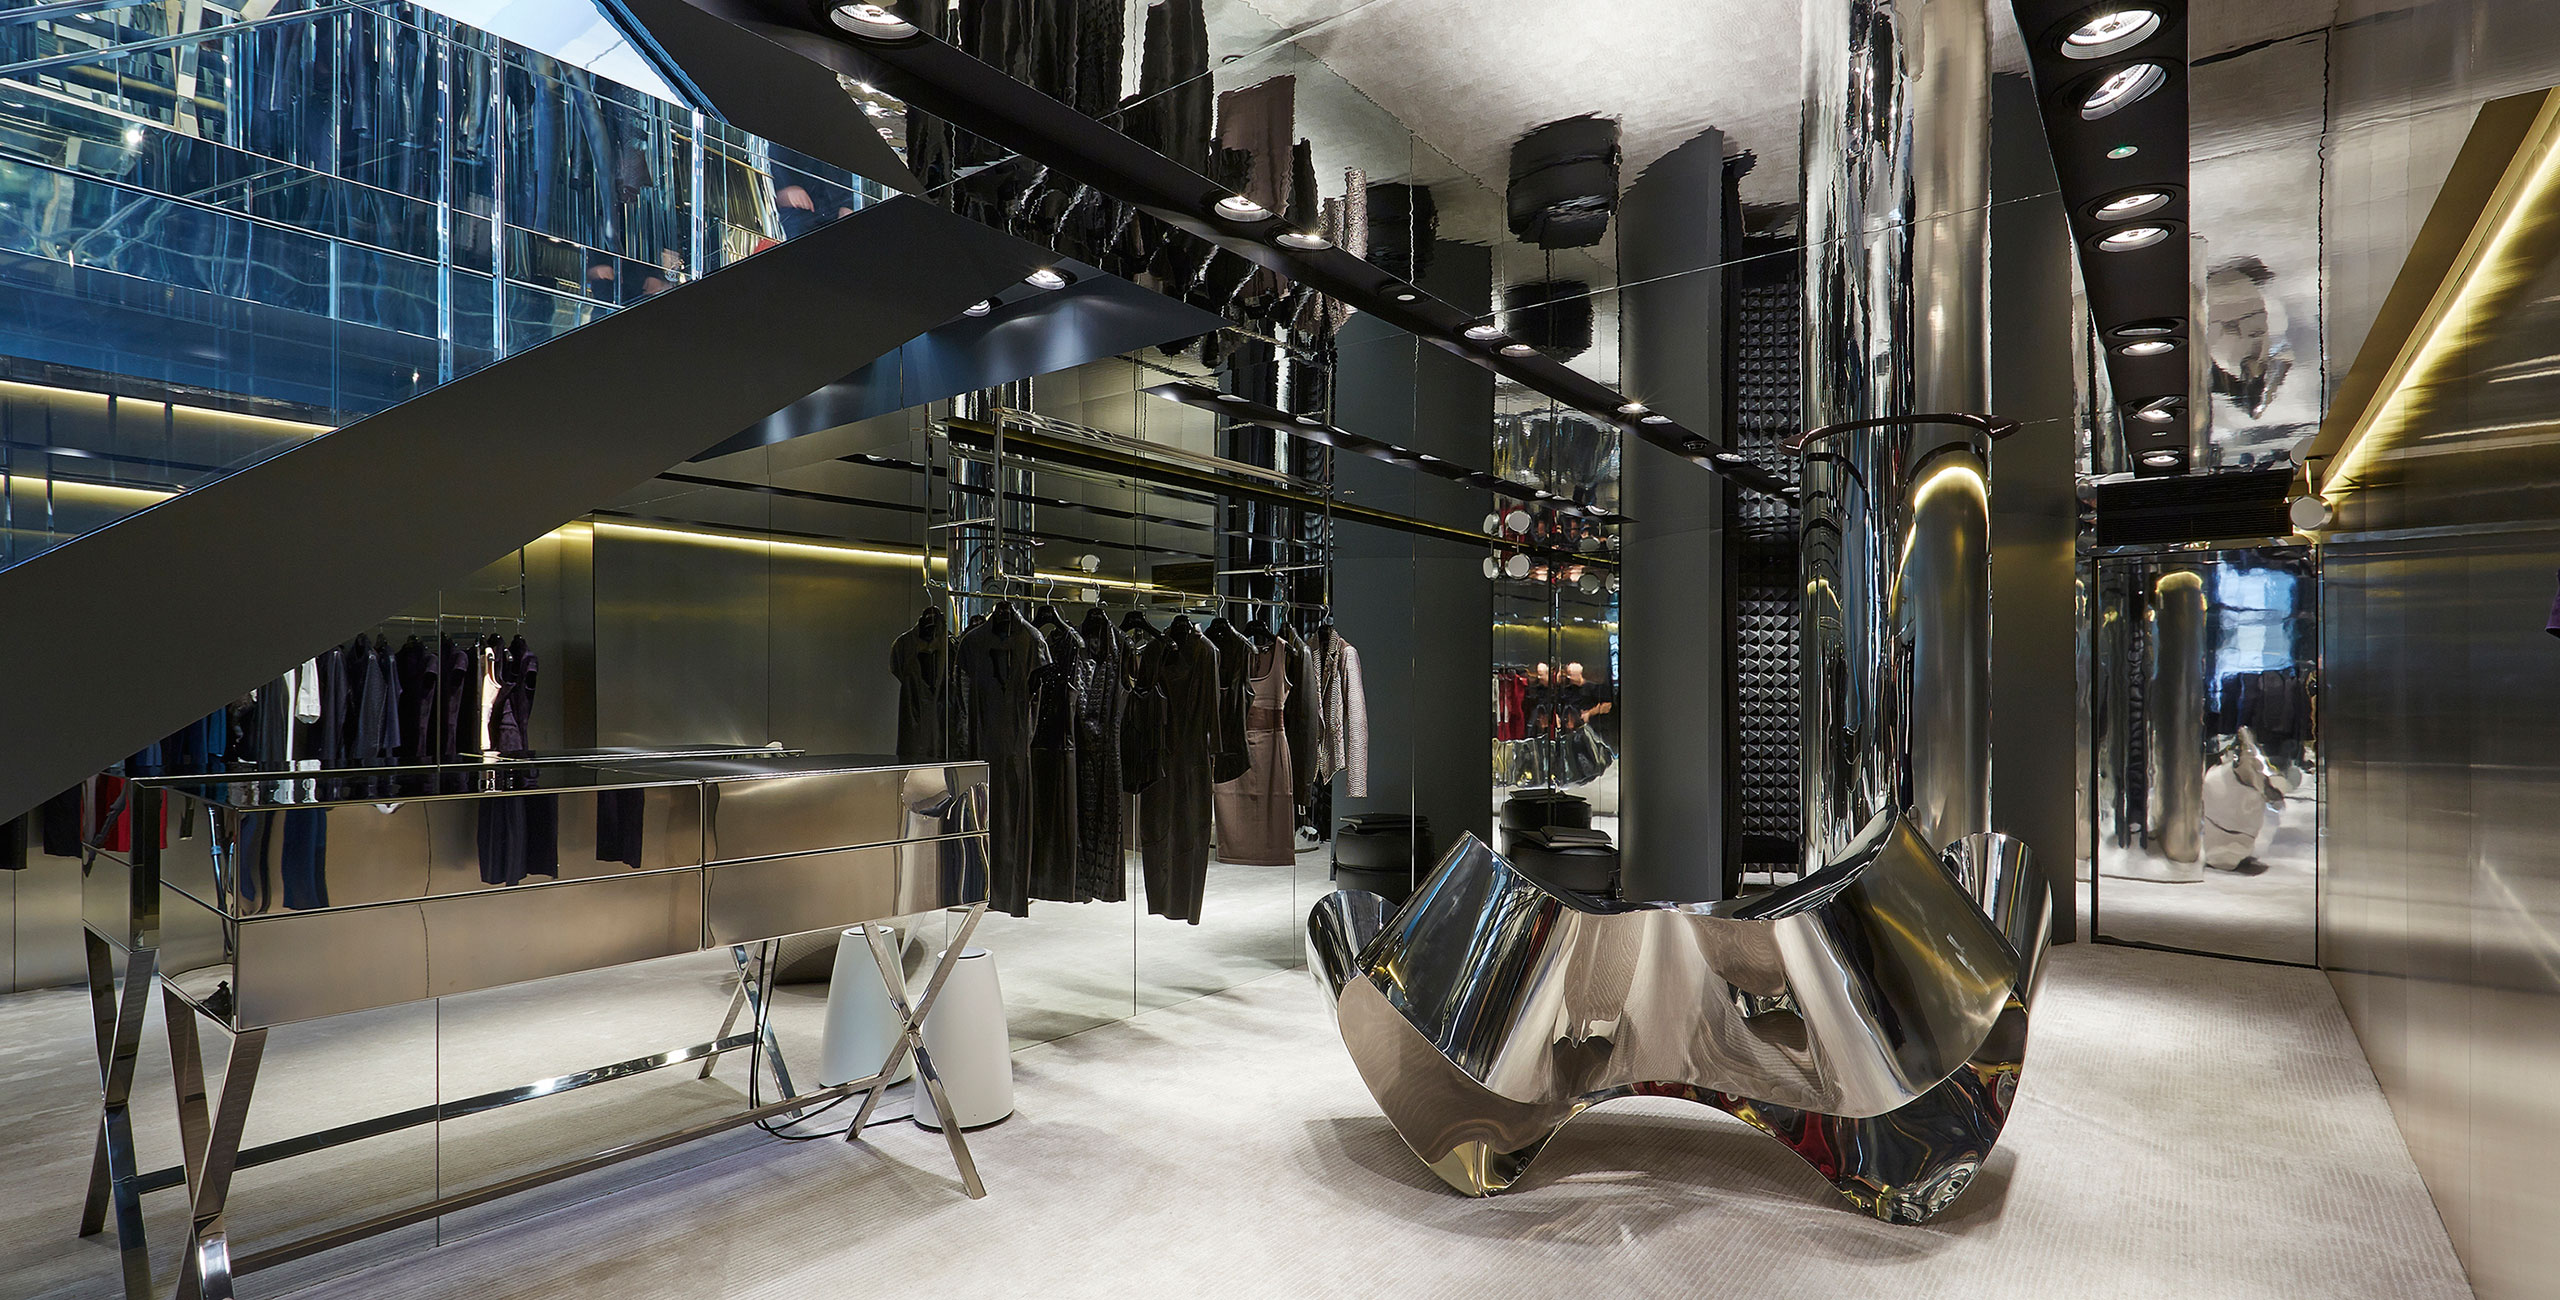 into lighting consultants design scheme for jitrois flagship retail store in london